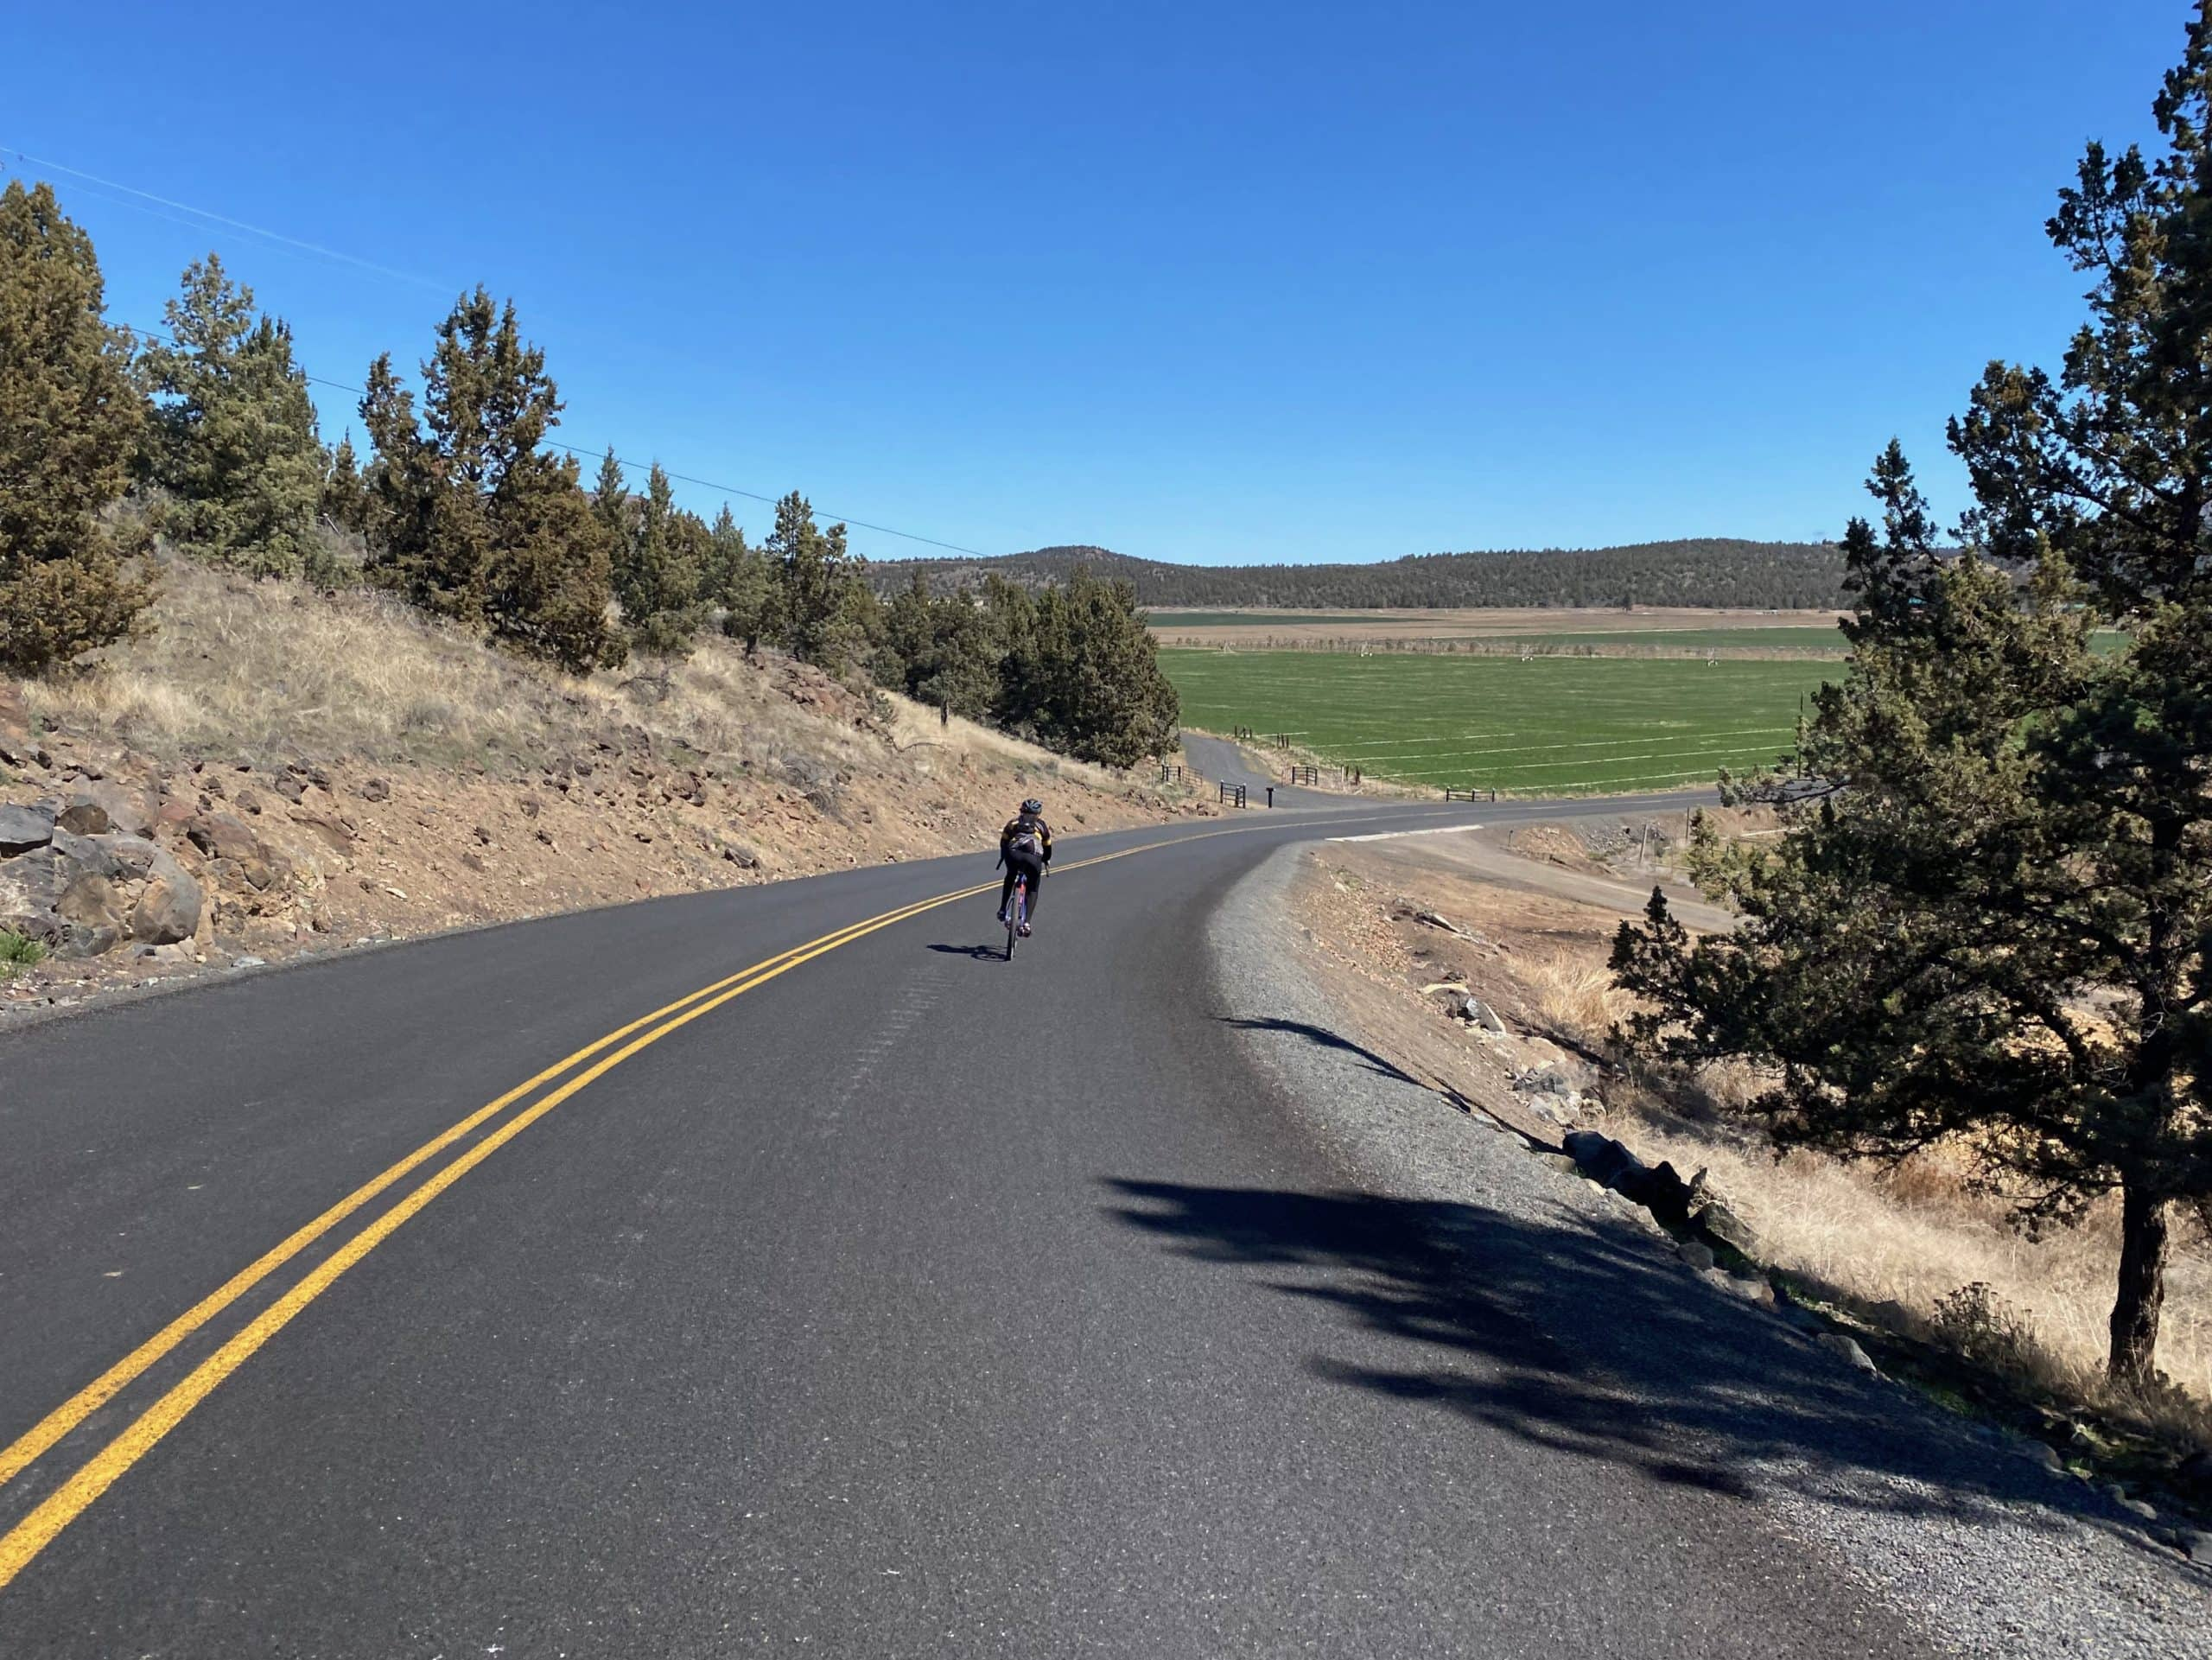 Cyclist on road dropping into McPheeters Turf farm near Smith Rock state park in Oregon.